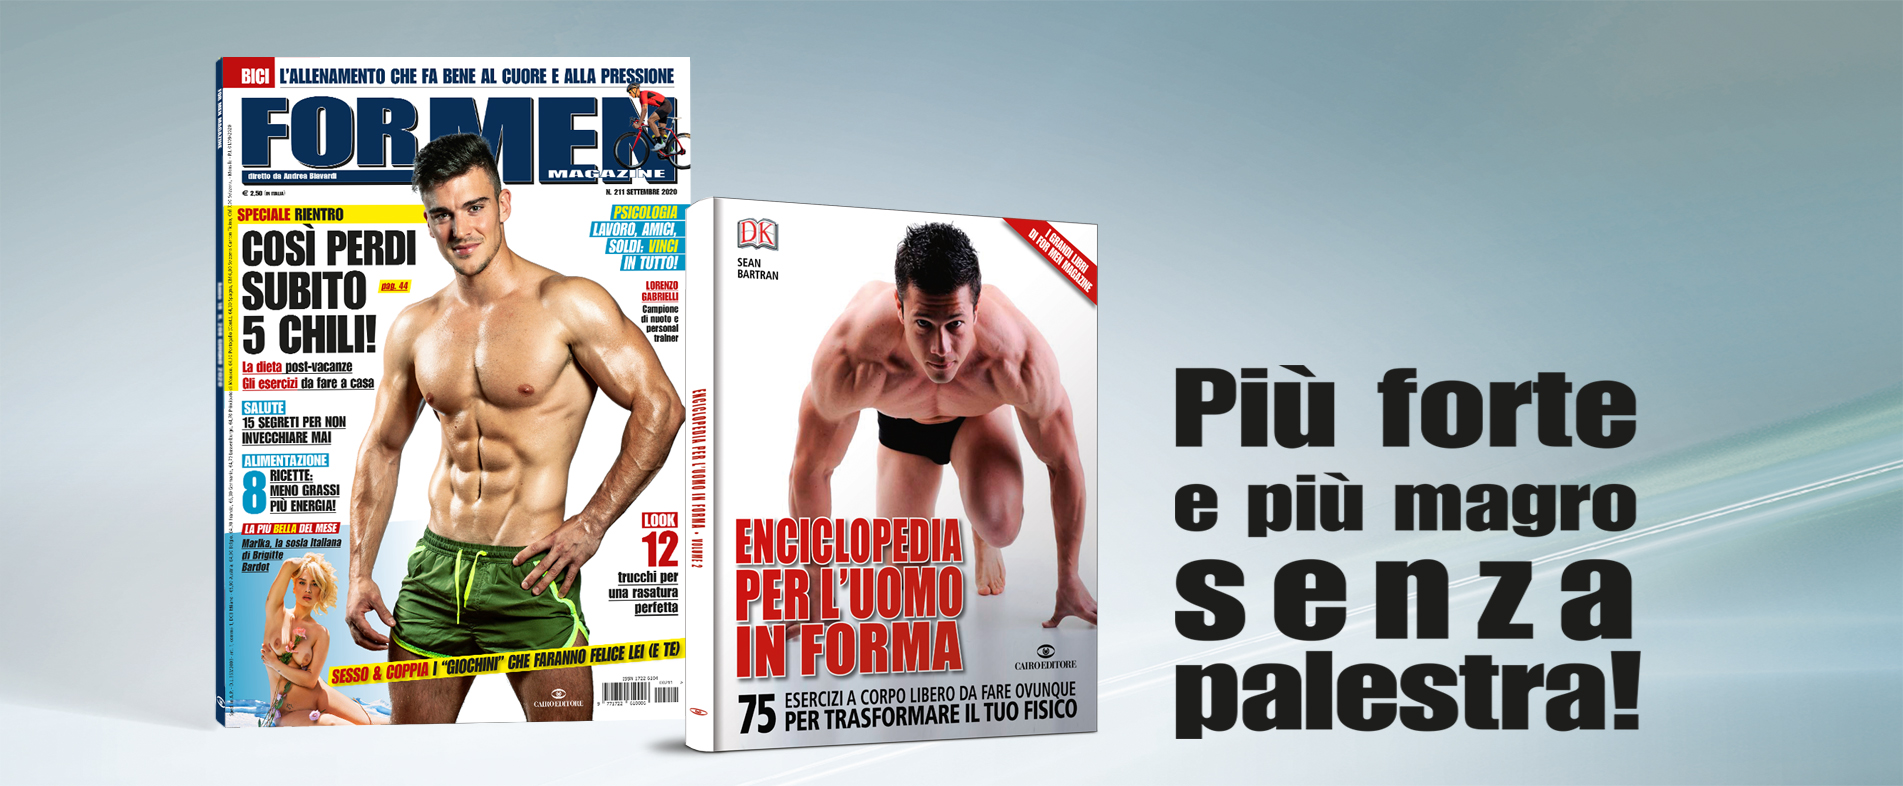 Enciclopedia per l'uomo in forma - II volume